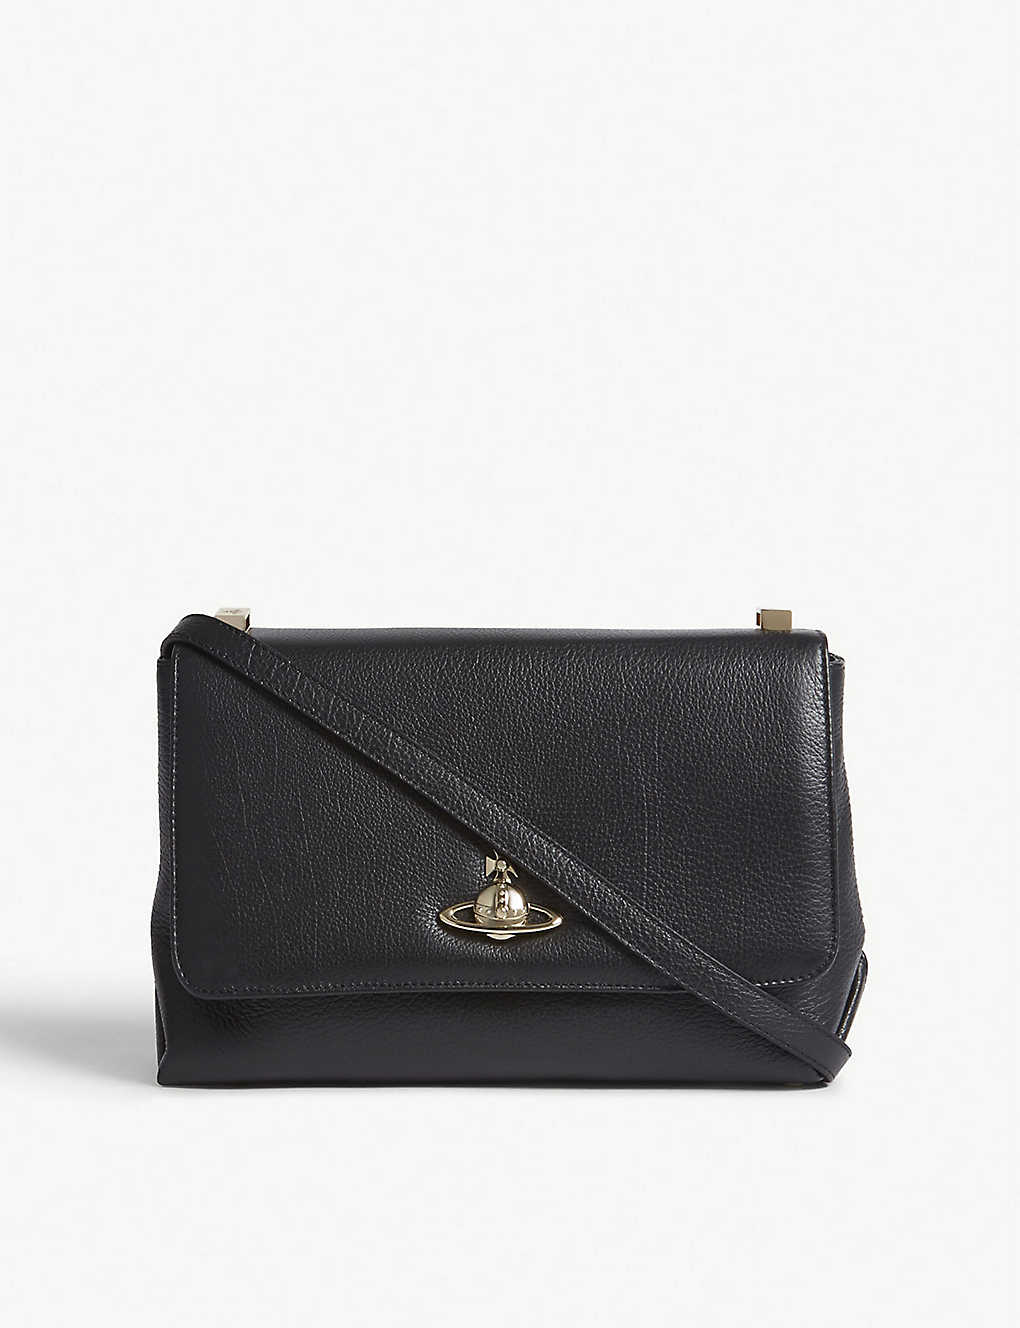 bb3bb5ec65 VIVIENNE WESTWOOD - Balmoral grained leather cross-body bag ...